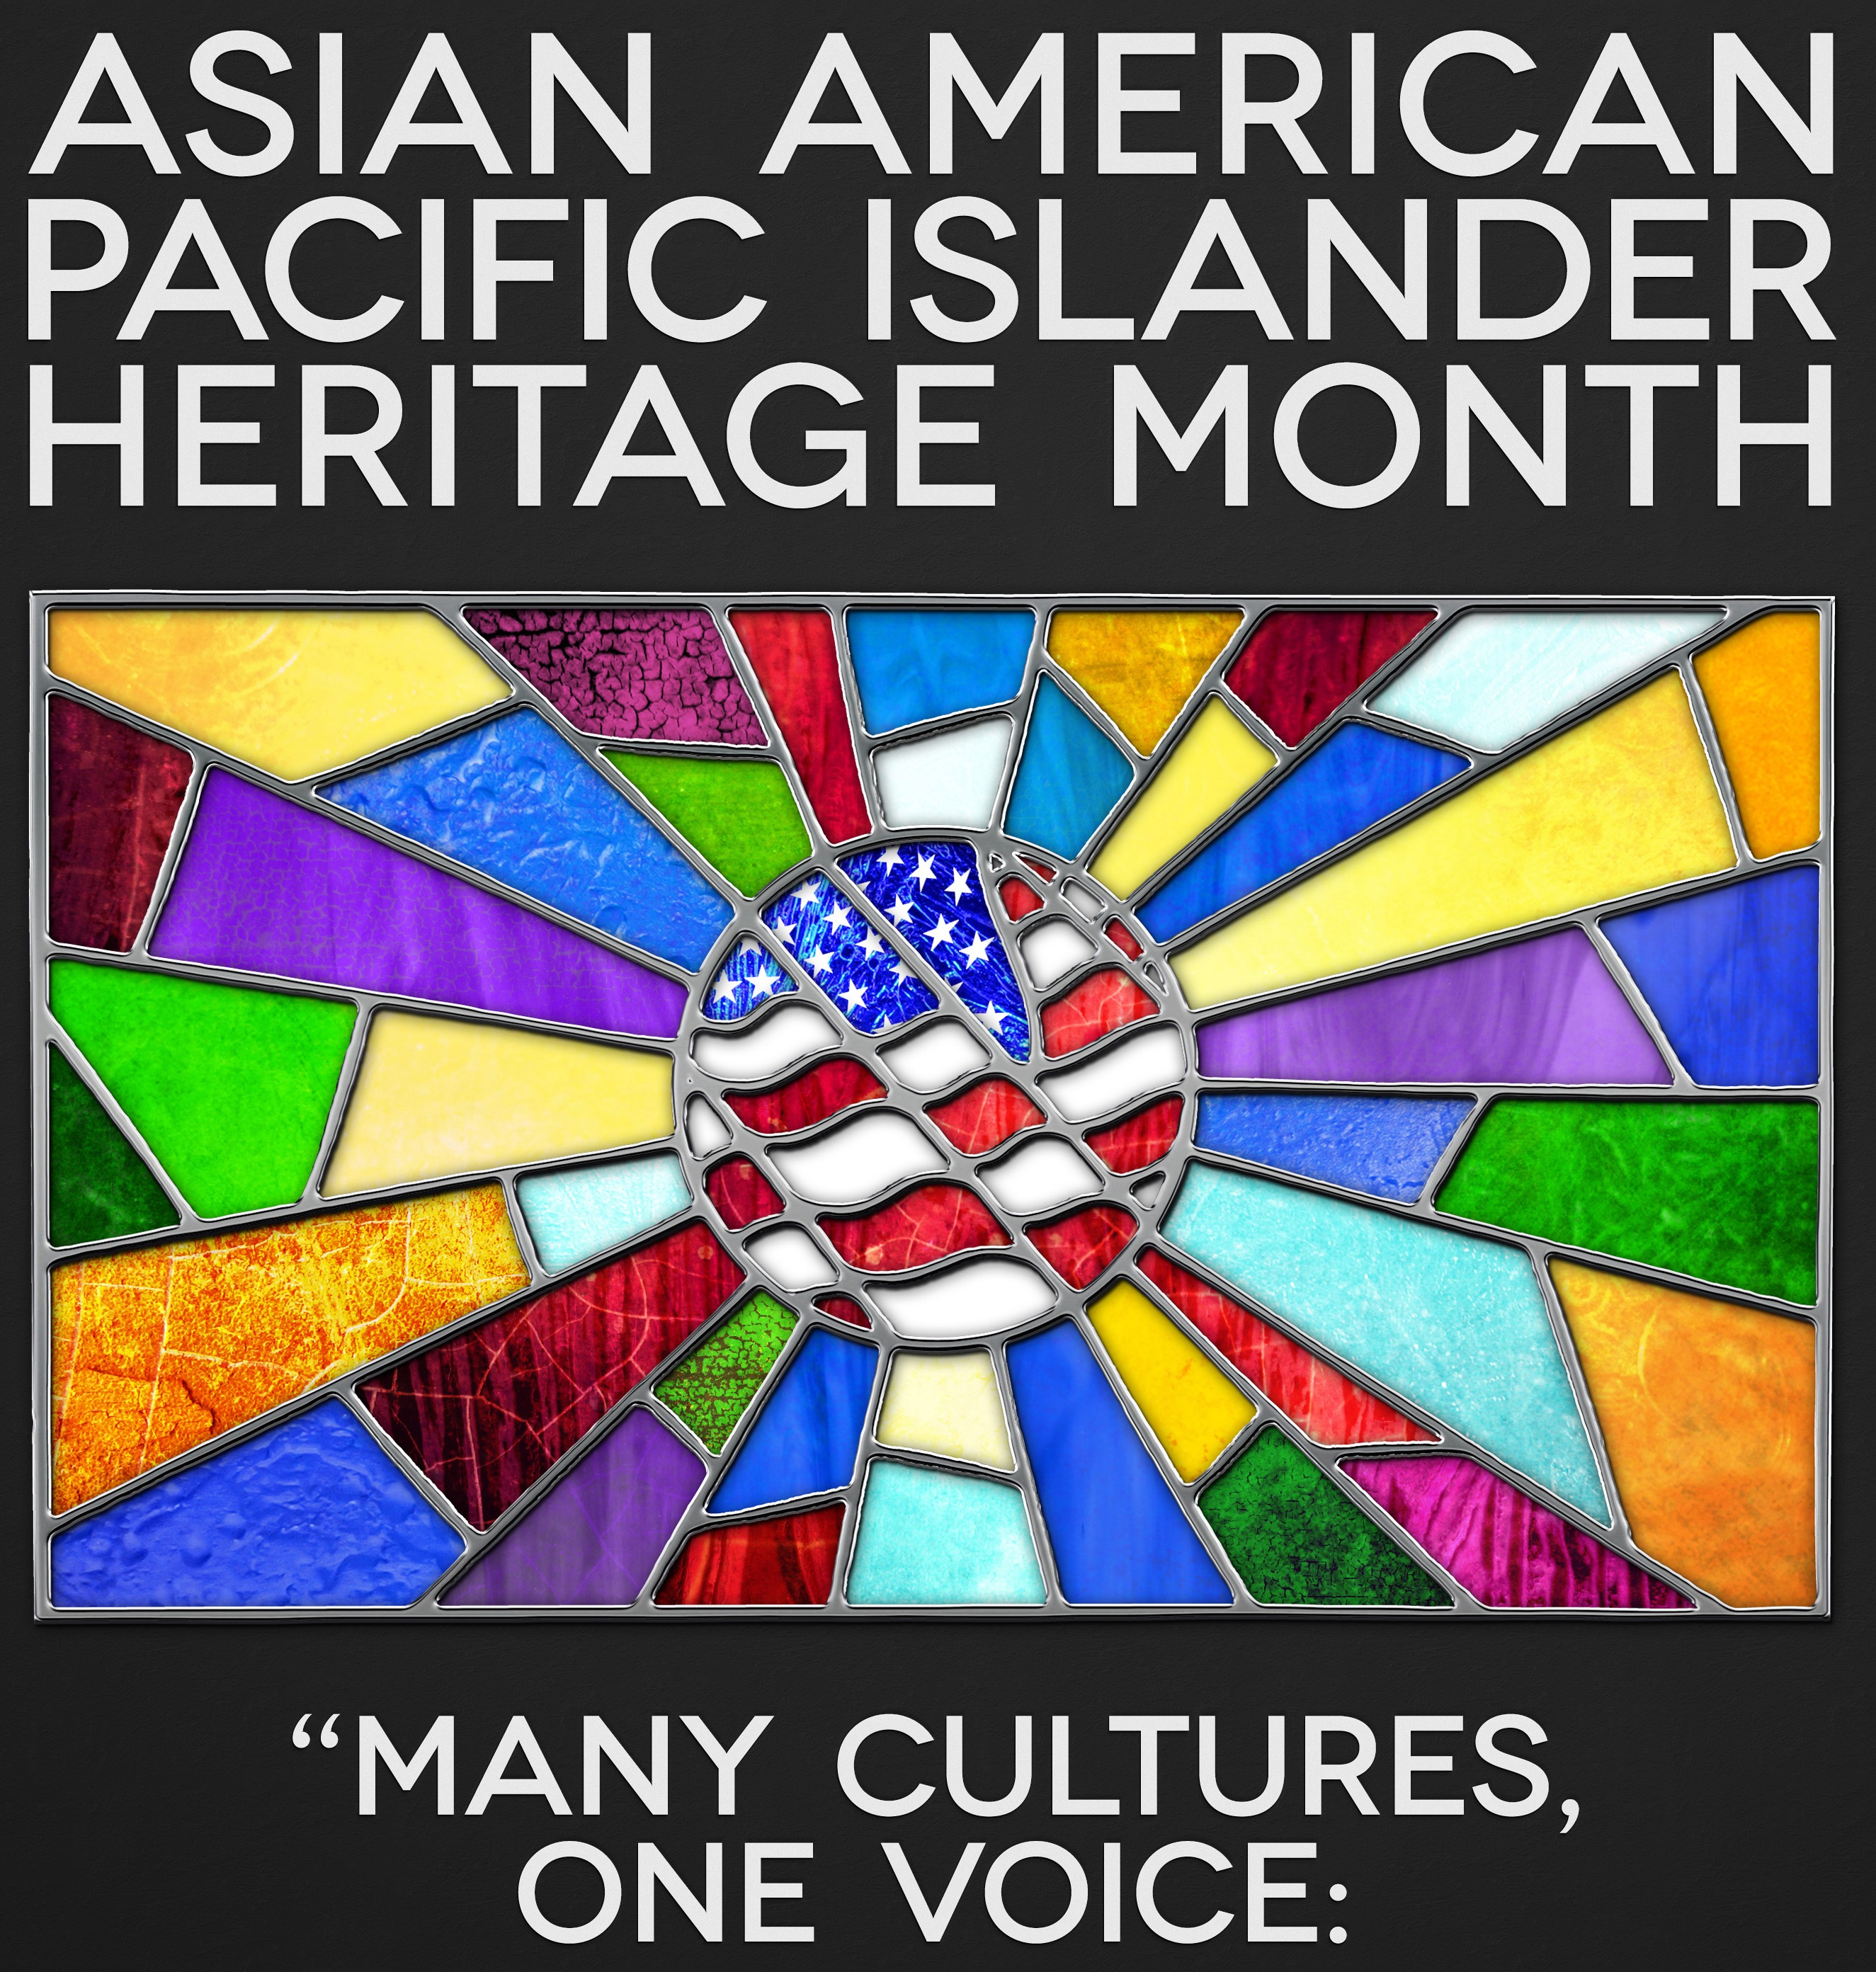 asian pacific islander heritage month 2008